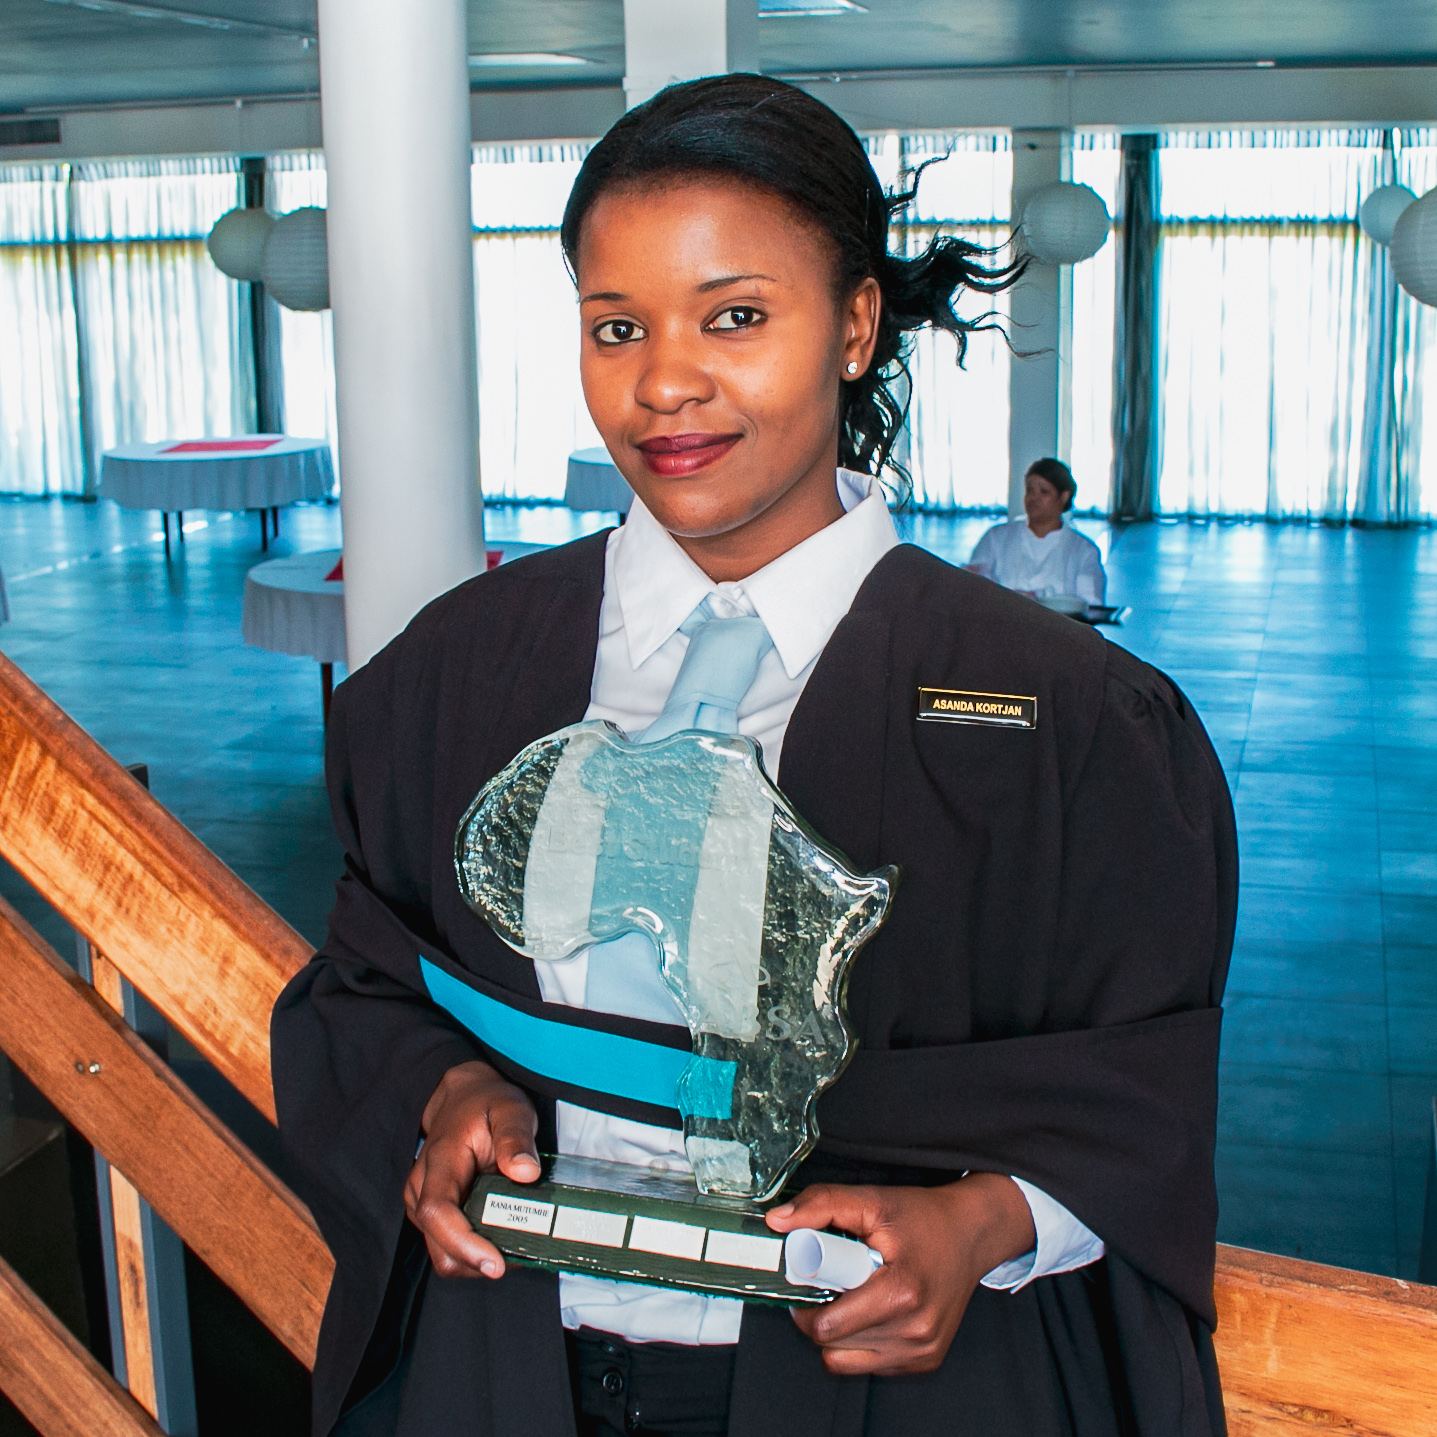 Asanda with her award for finishing #1 in her class at the SA College for Tourism